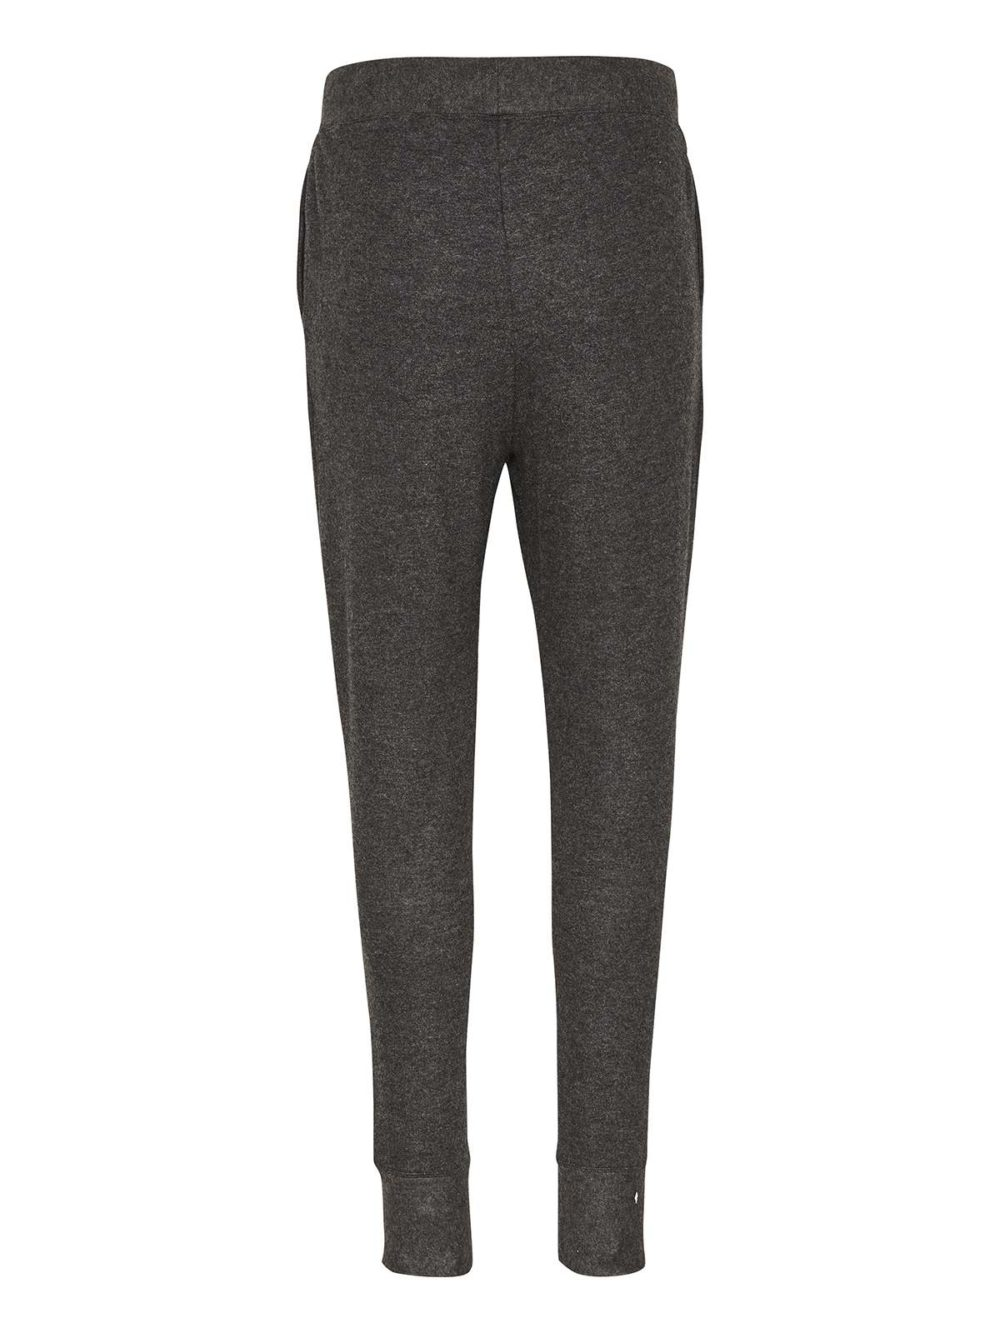 Macaria Pants Part Two Katie Kerr Women's Clothing